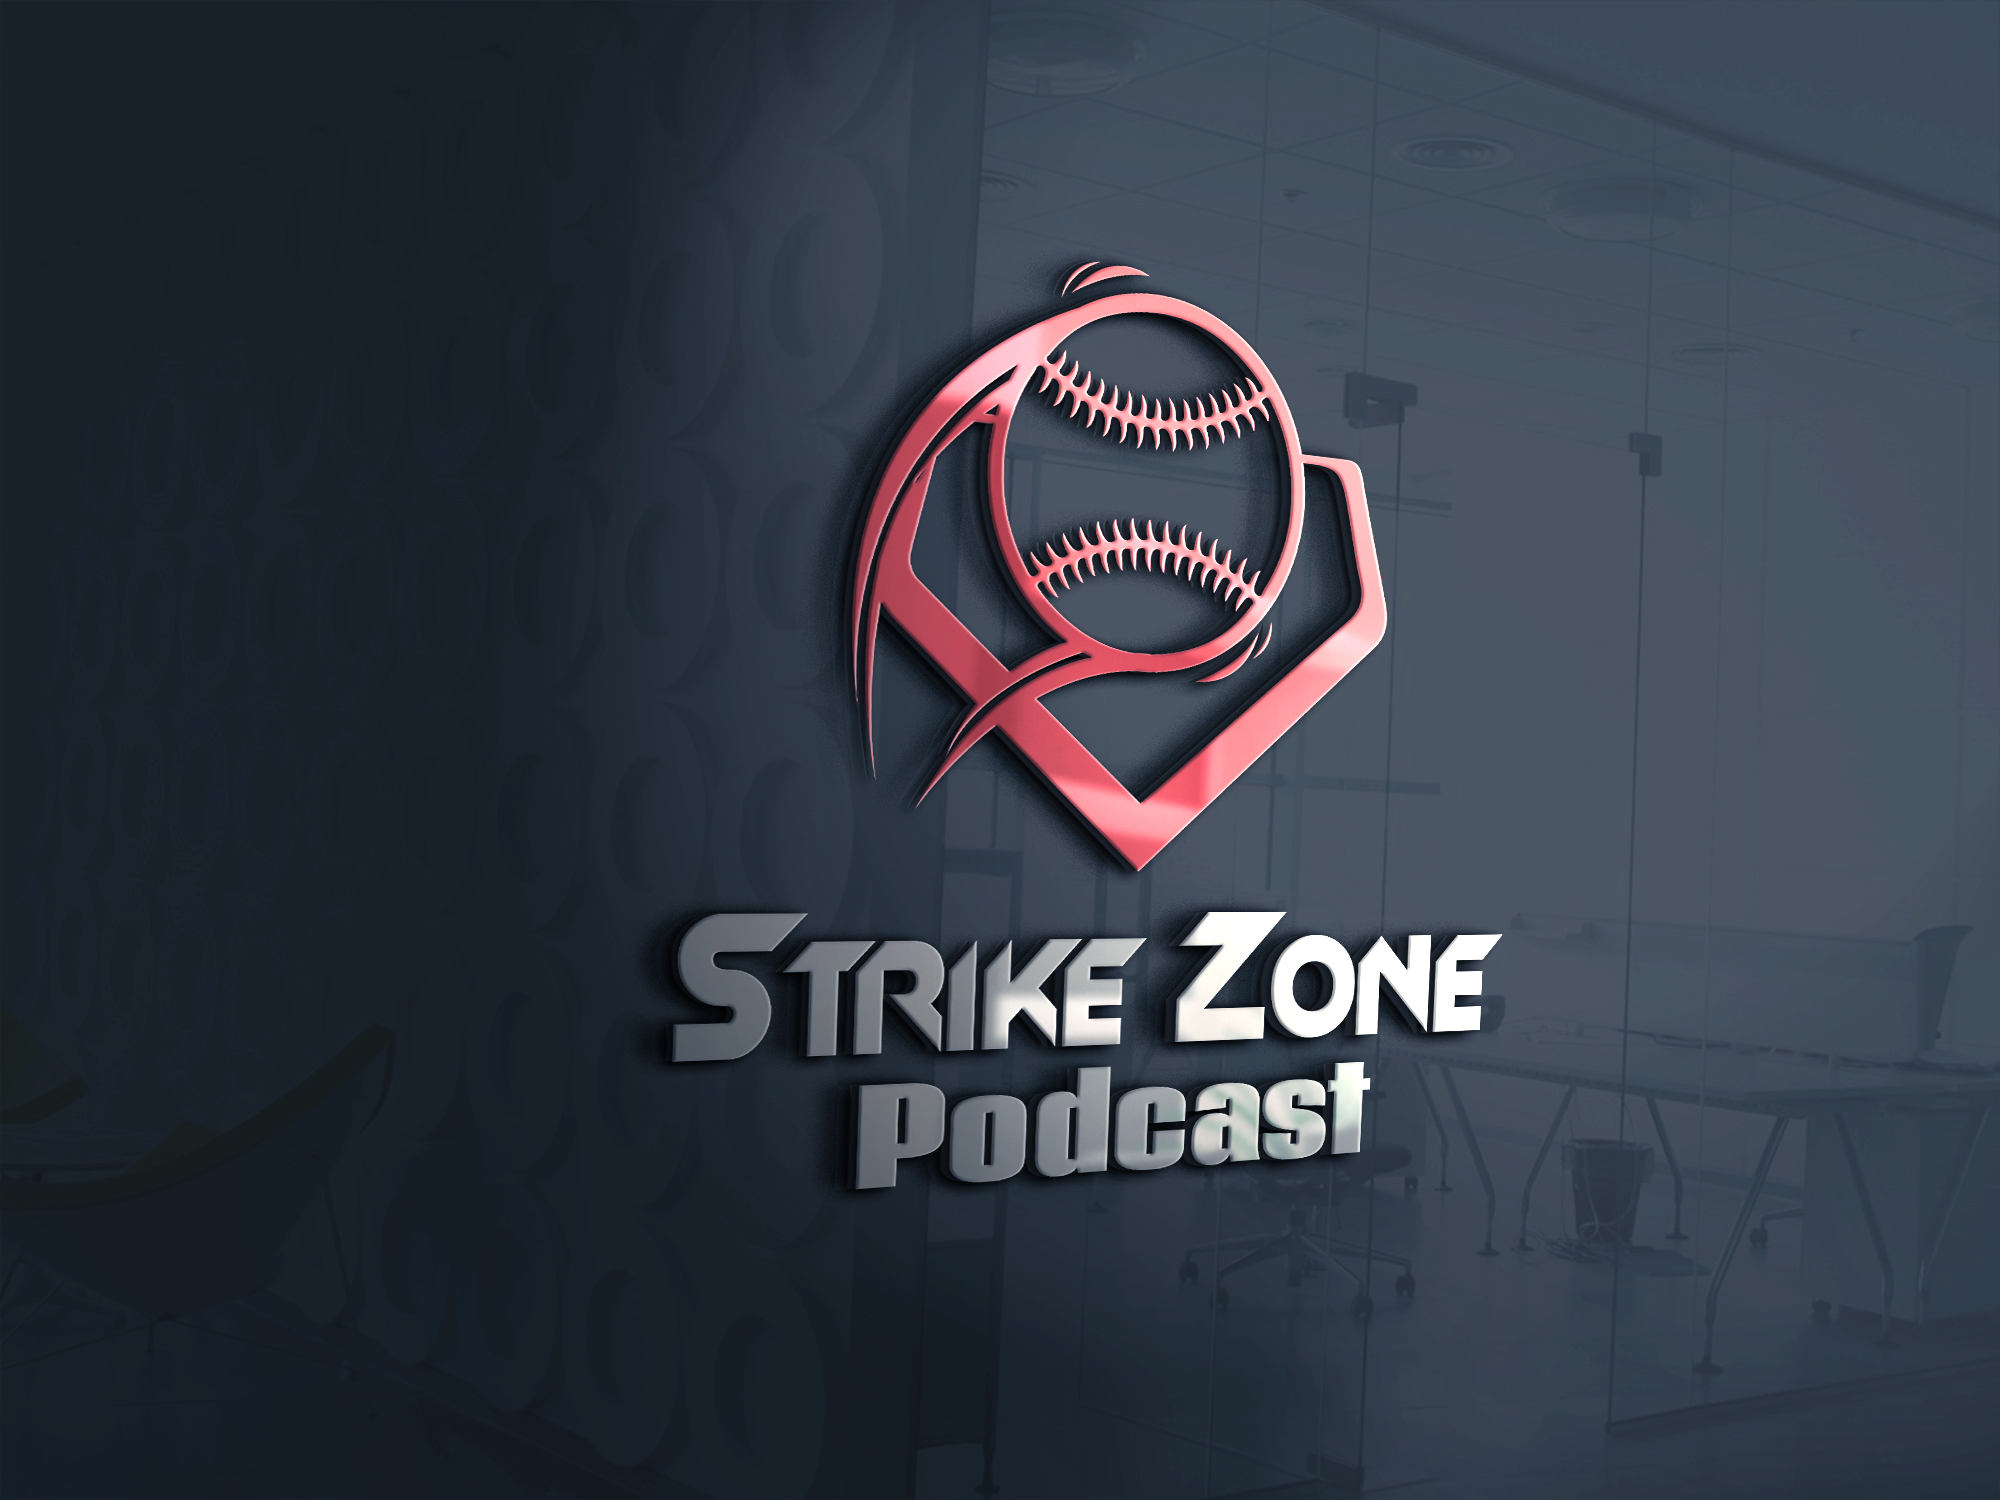 The Strike Zone